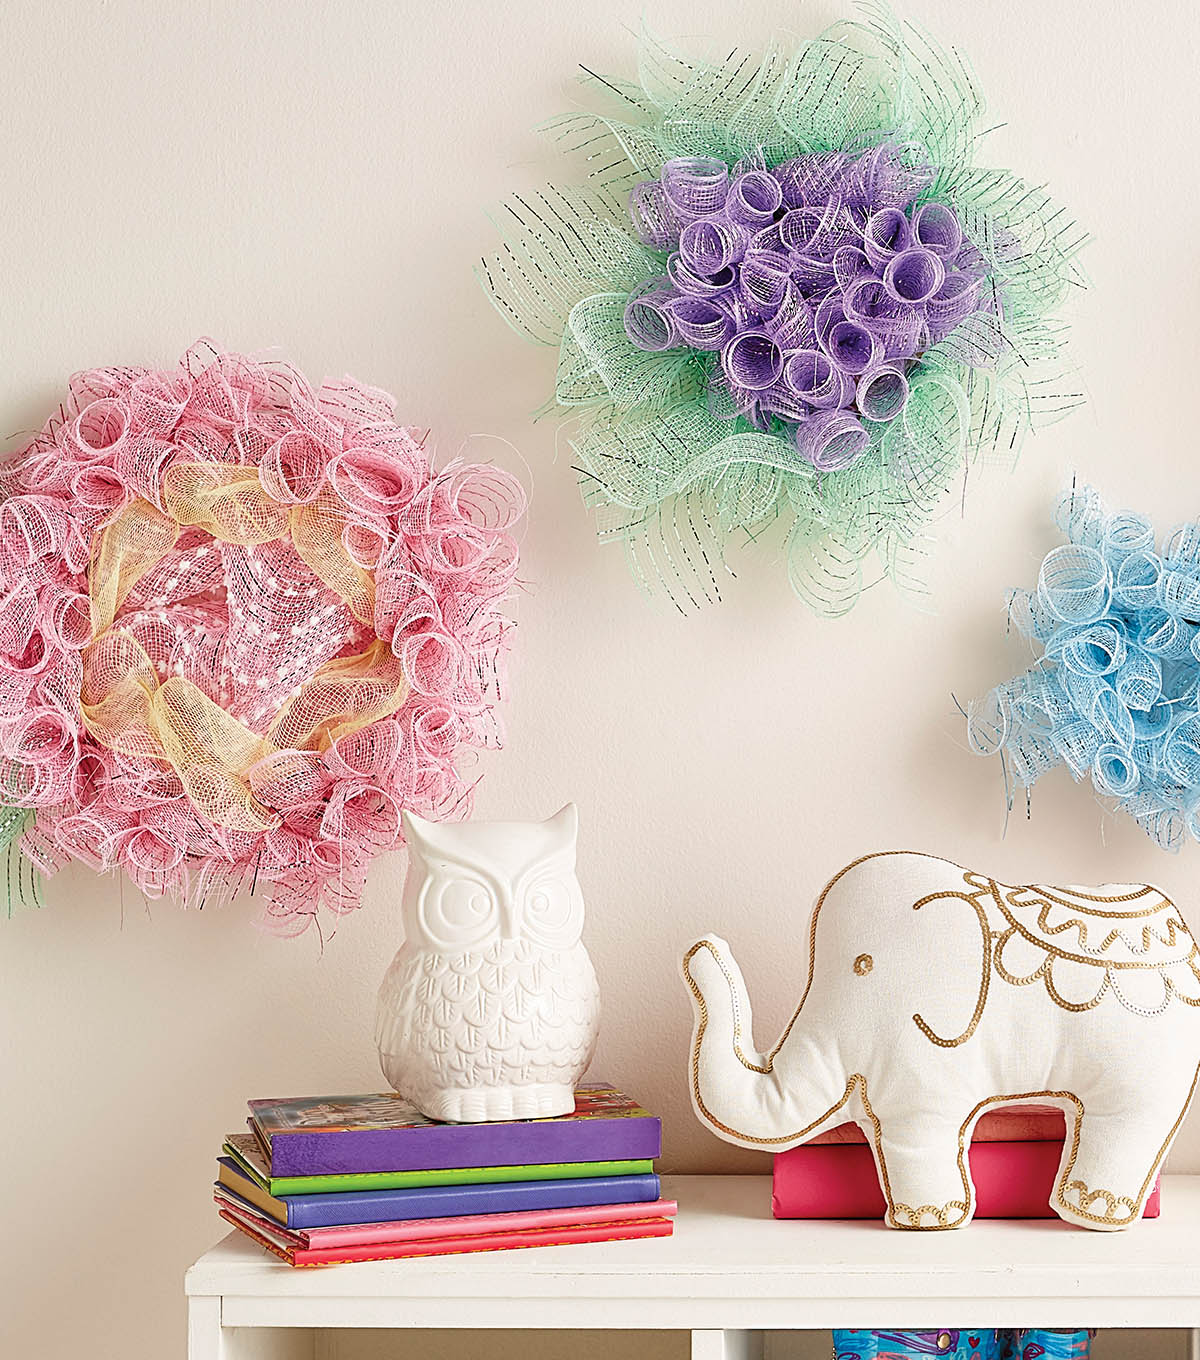 How To Make Deco Mesh Flowers